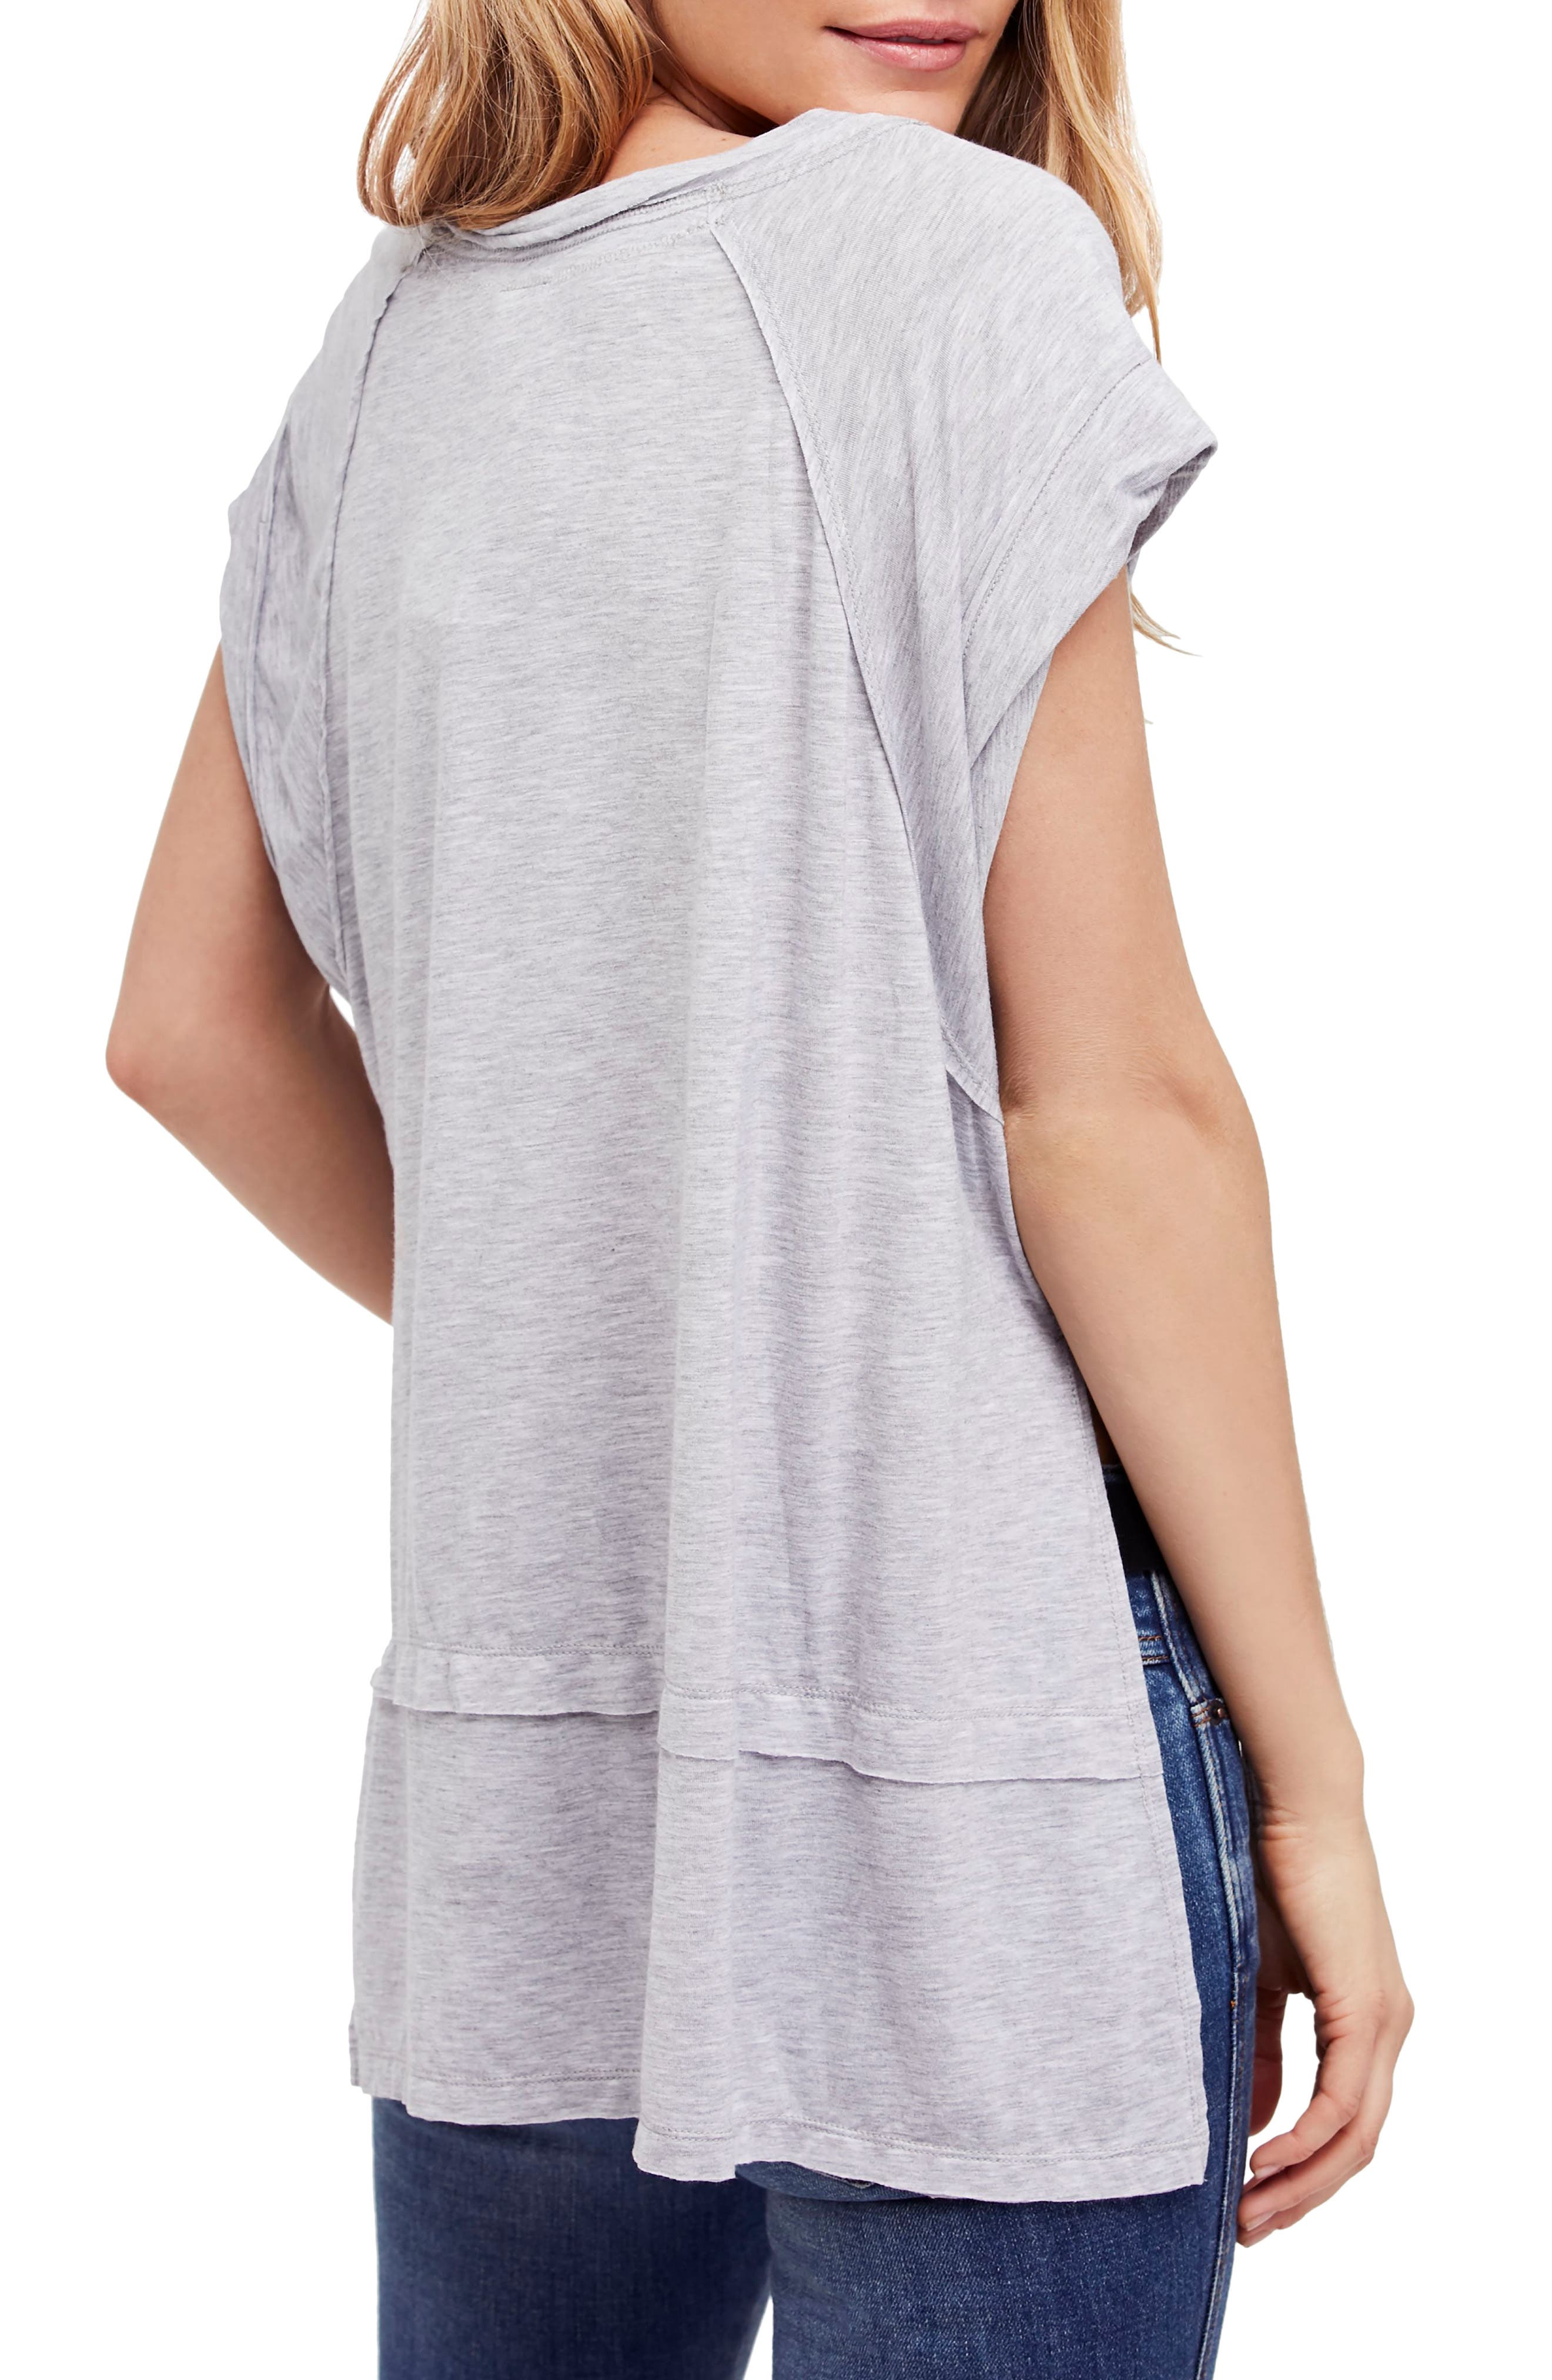 We the Free by Free People Voyage Tee,                             Alternate thumbnail 7, color,